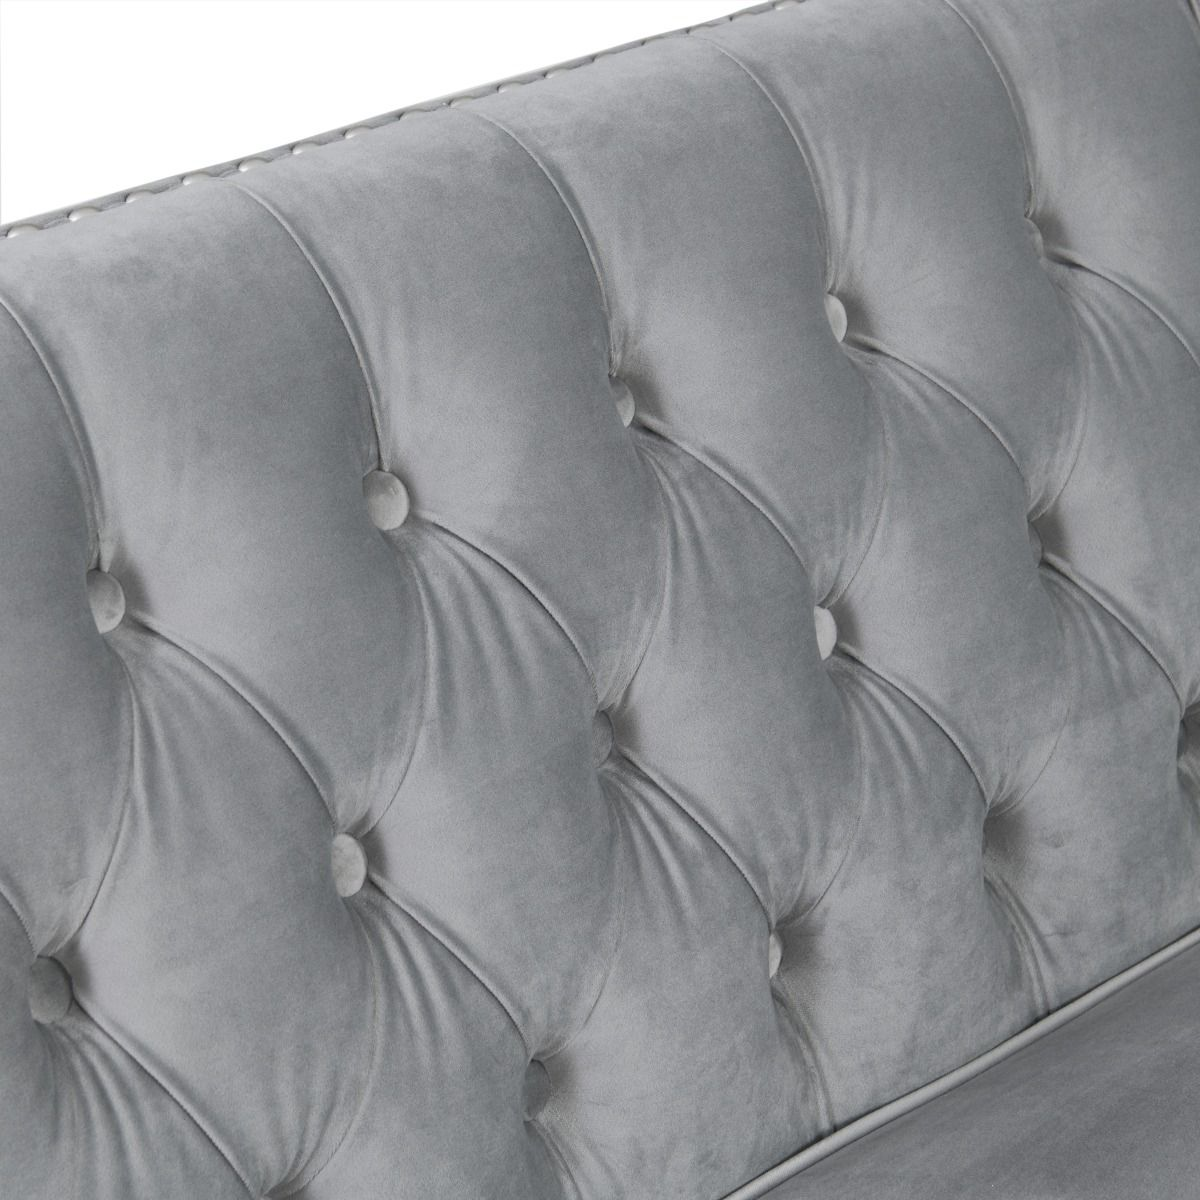 Chesterfield 3 Seater Sofa - Grey